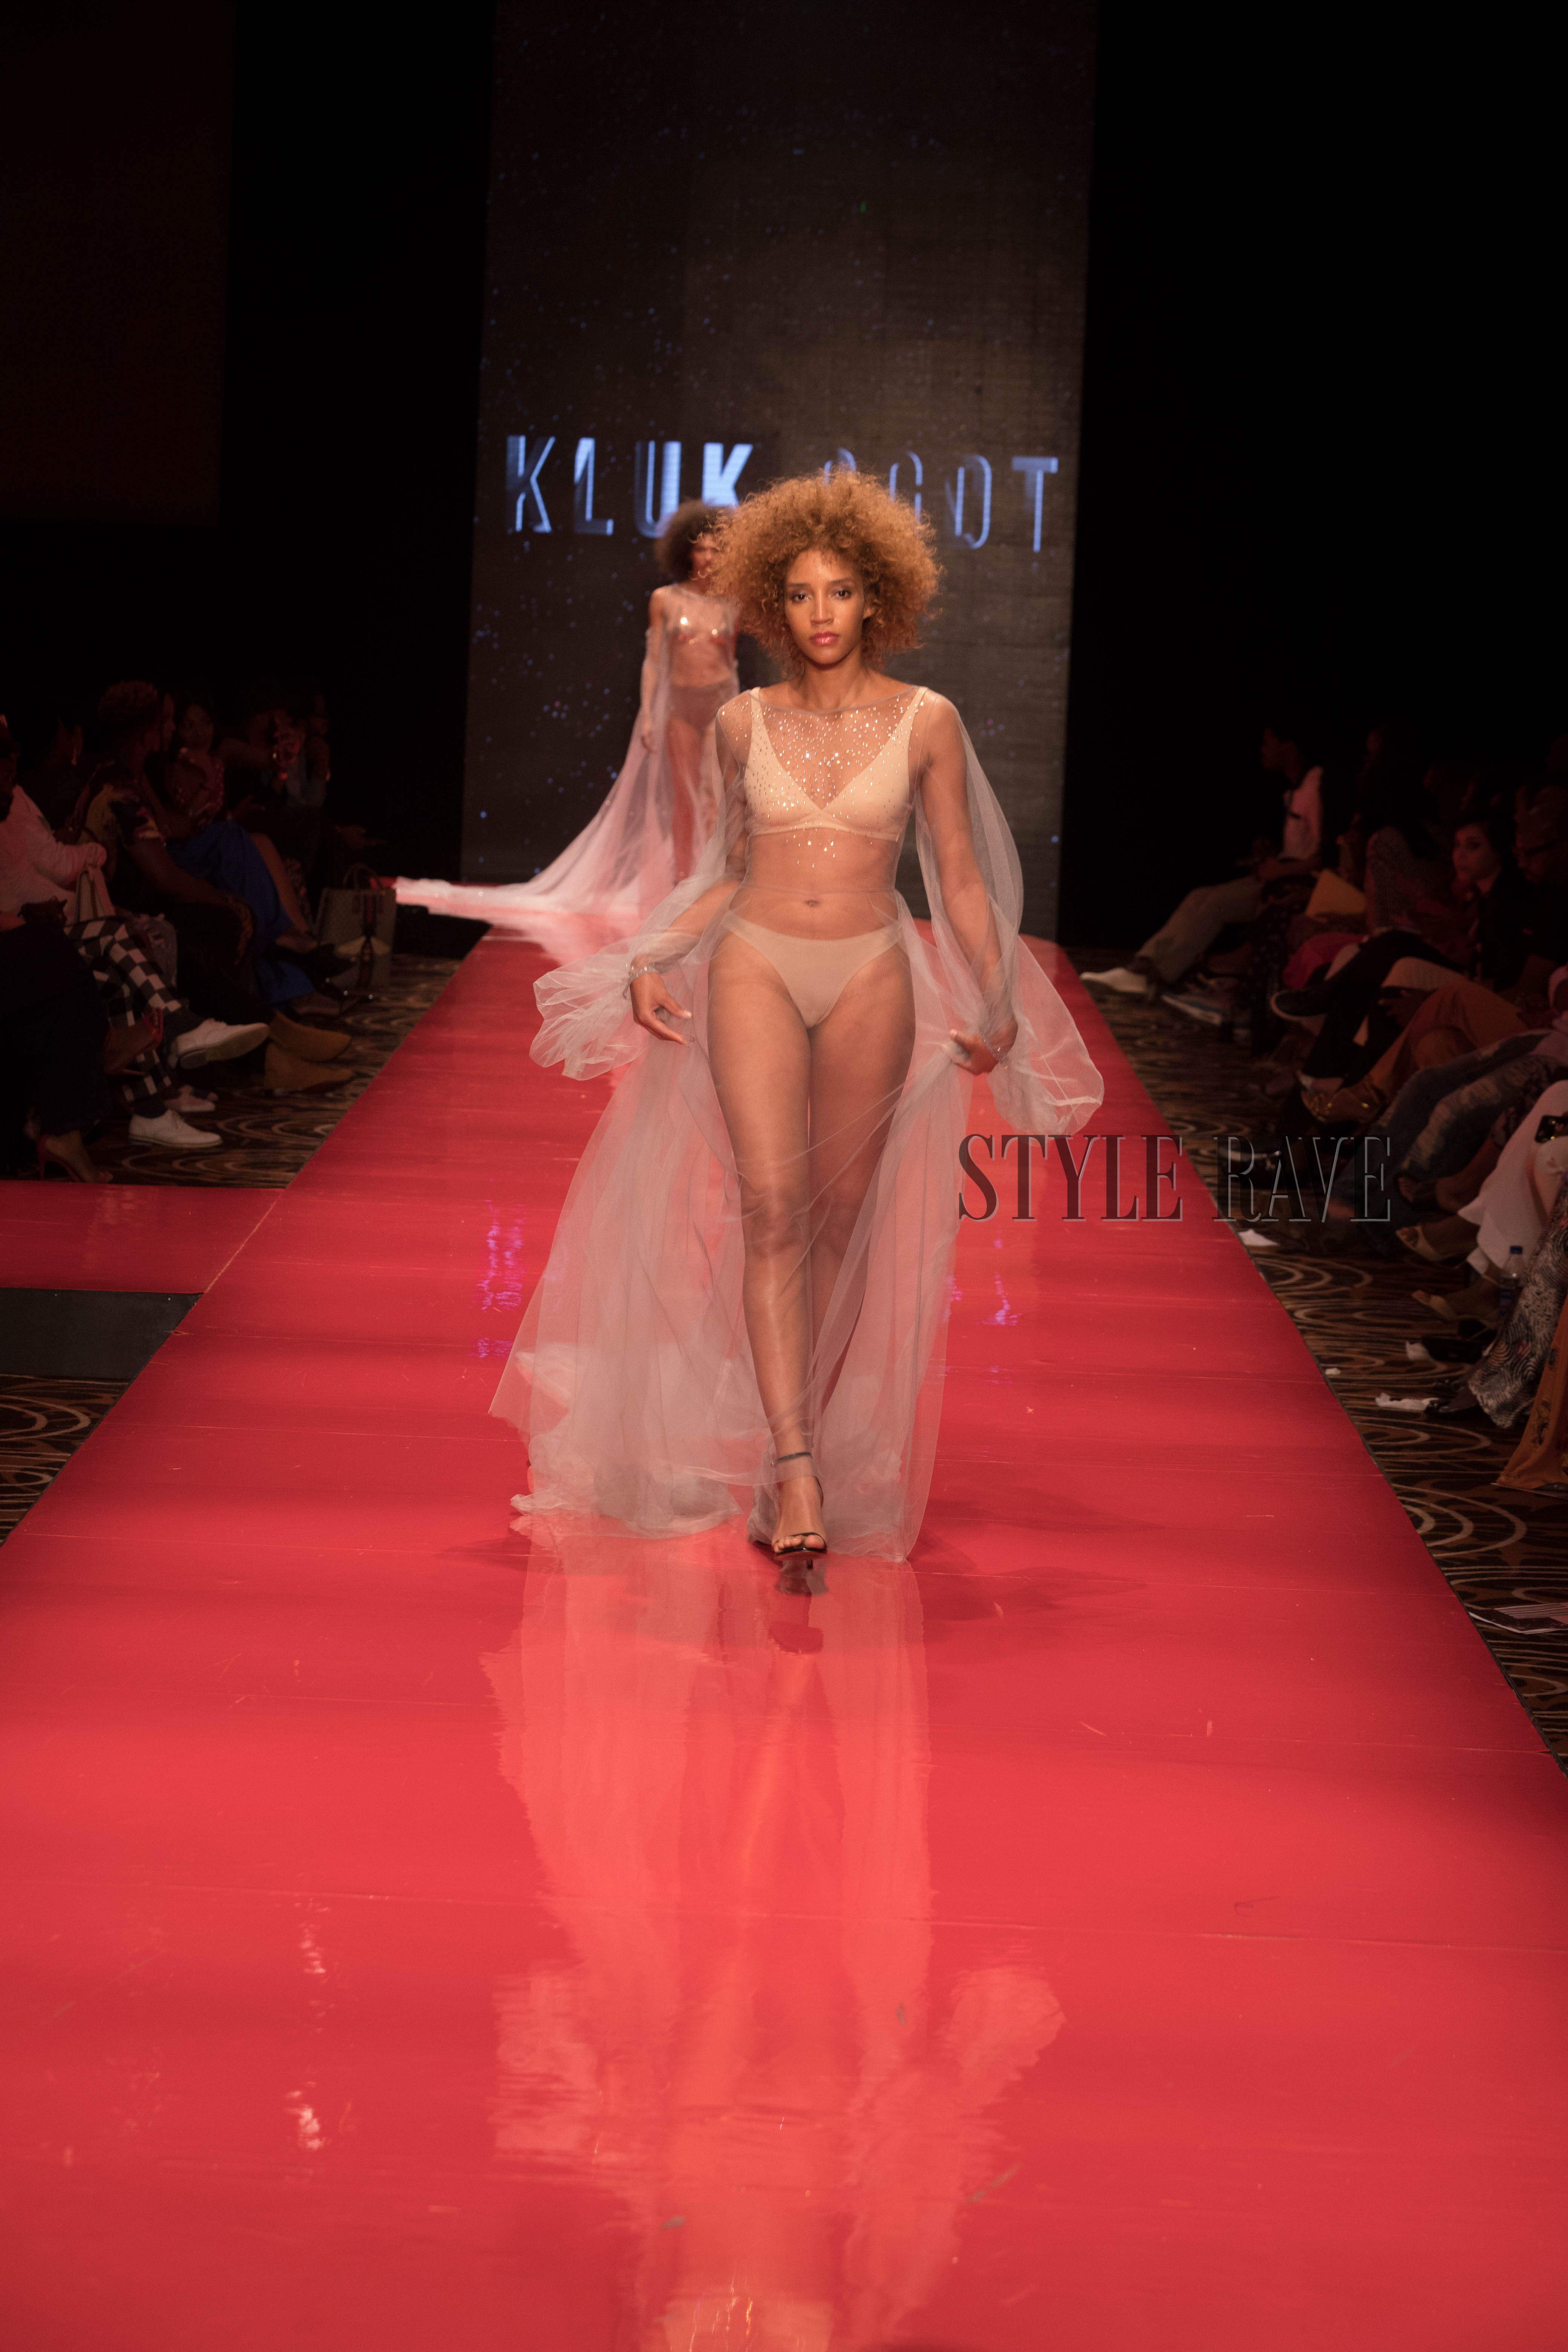 arise-fashion-week-2018-kluk-cgdt-presents-a-luxurious-line-with-a-play-on-structure-details-and-sheer